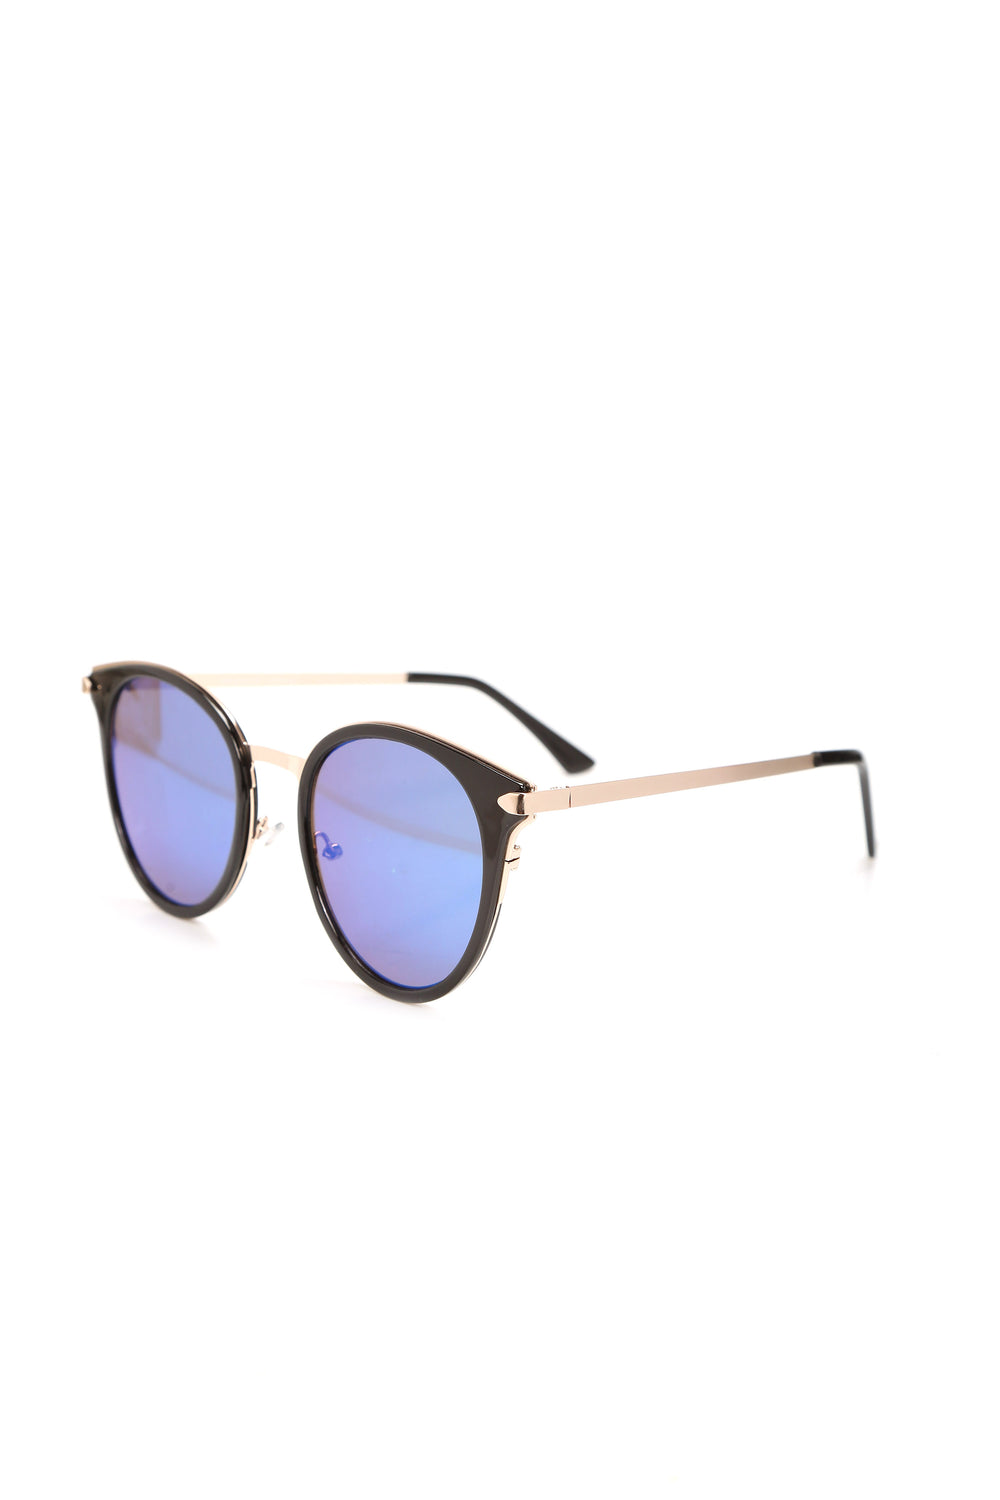 Guess What Sunglasses - Black/Blue